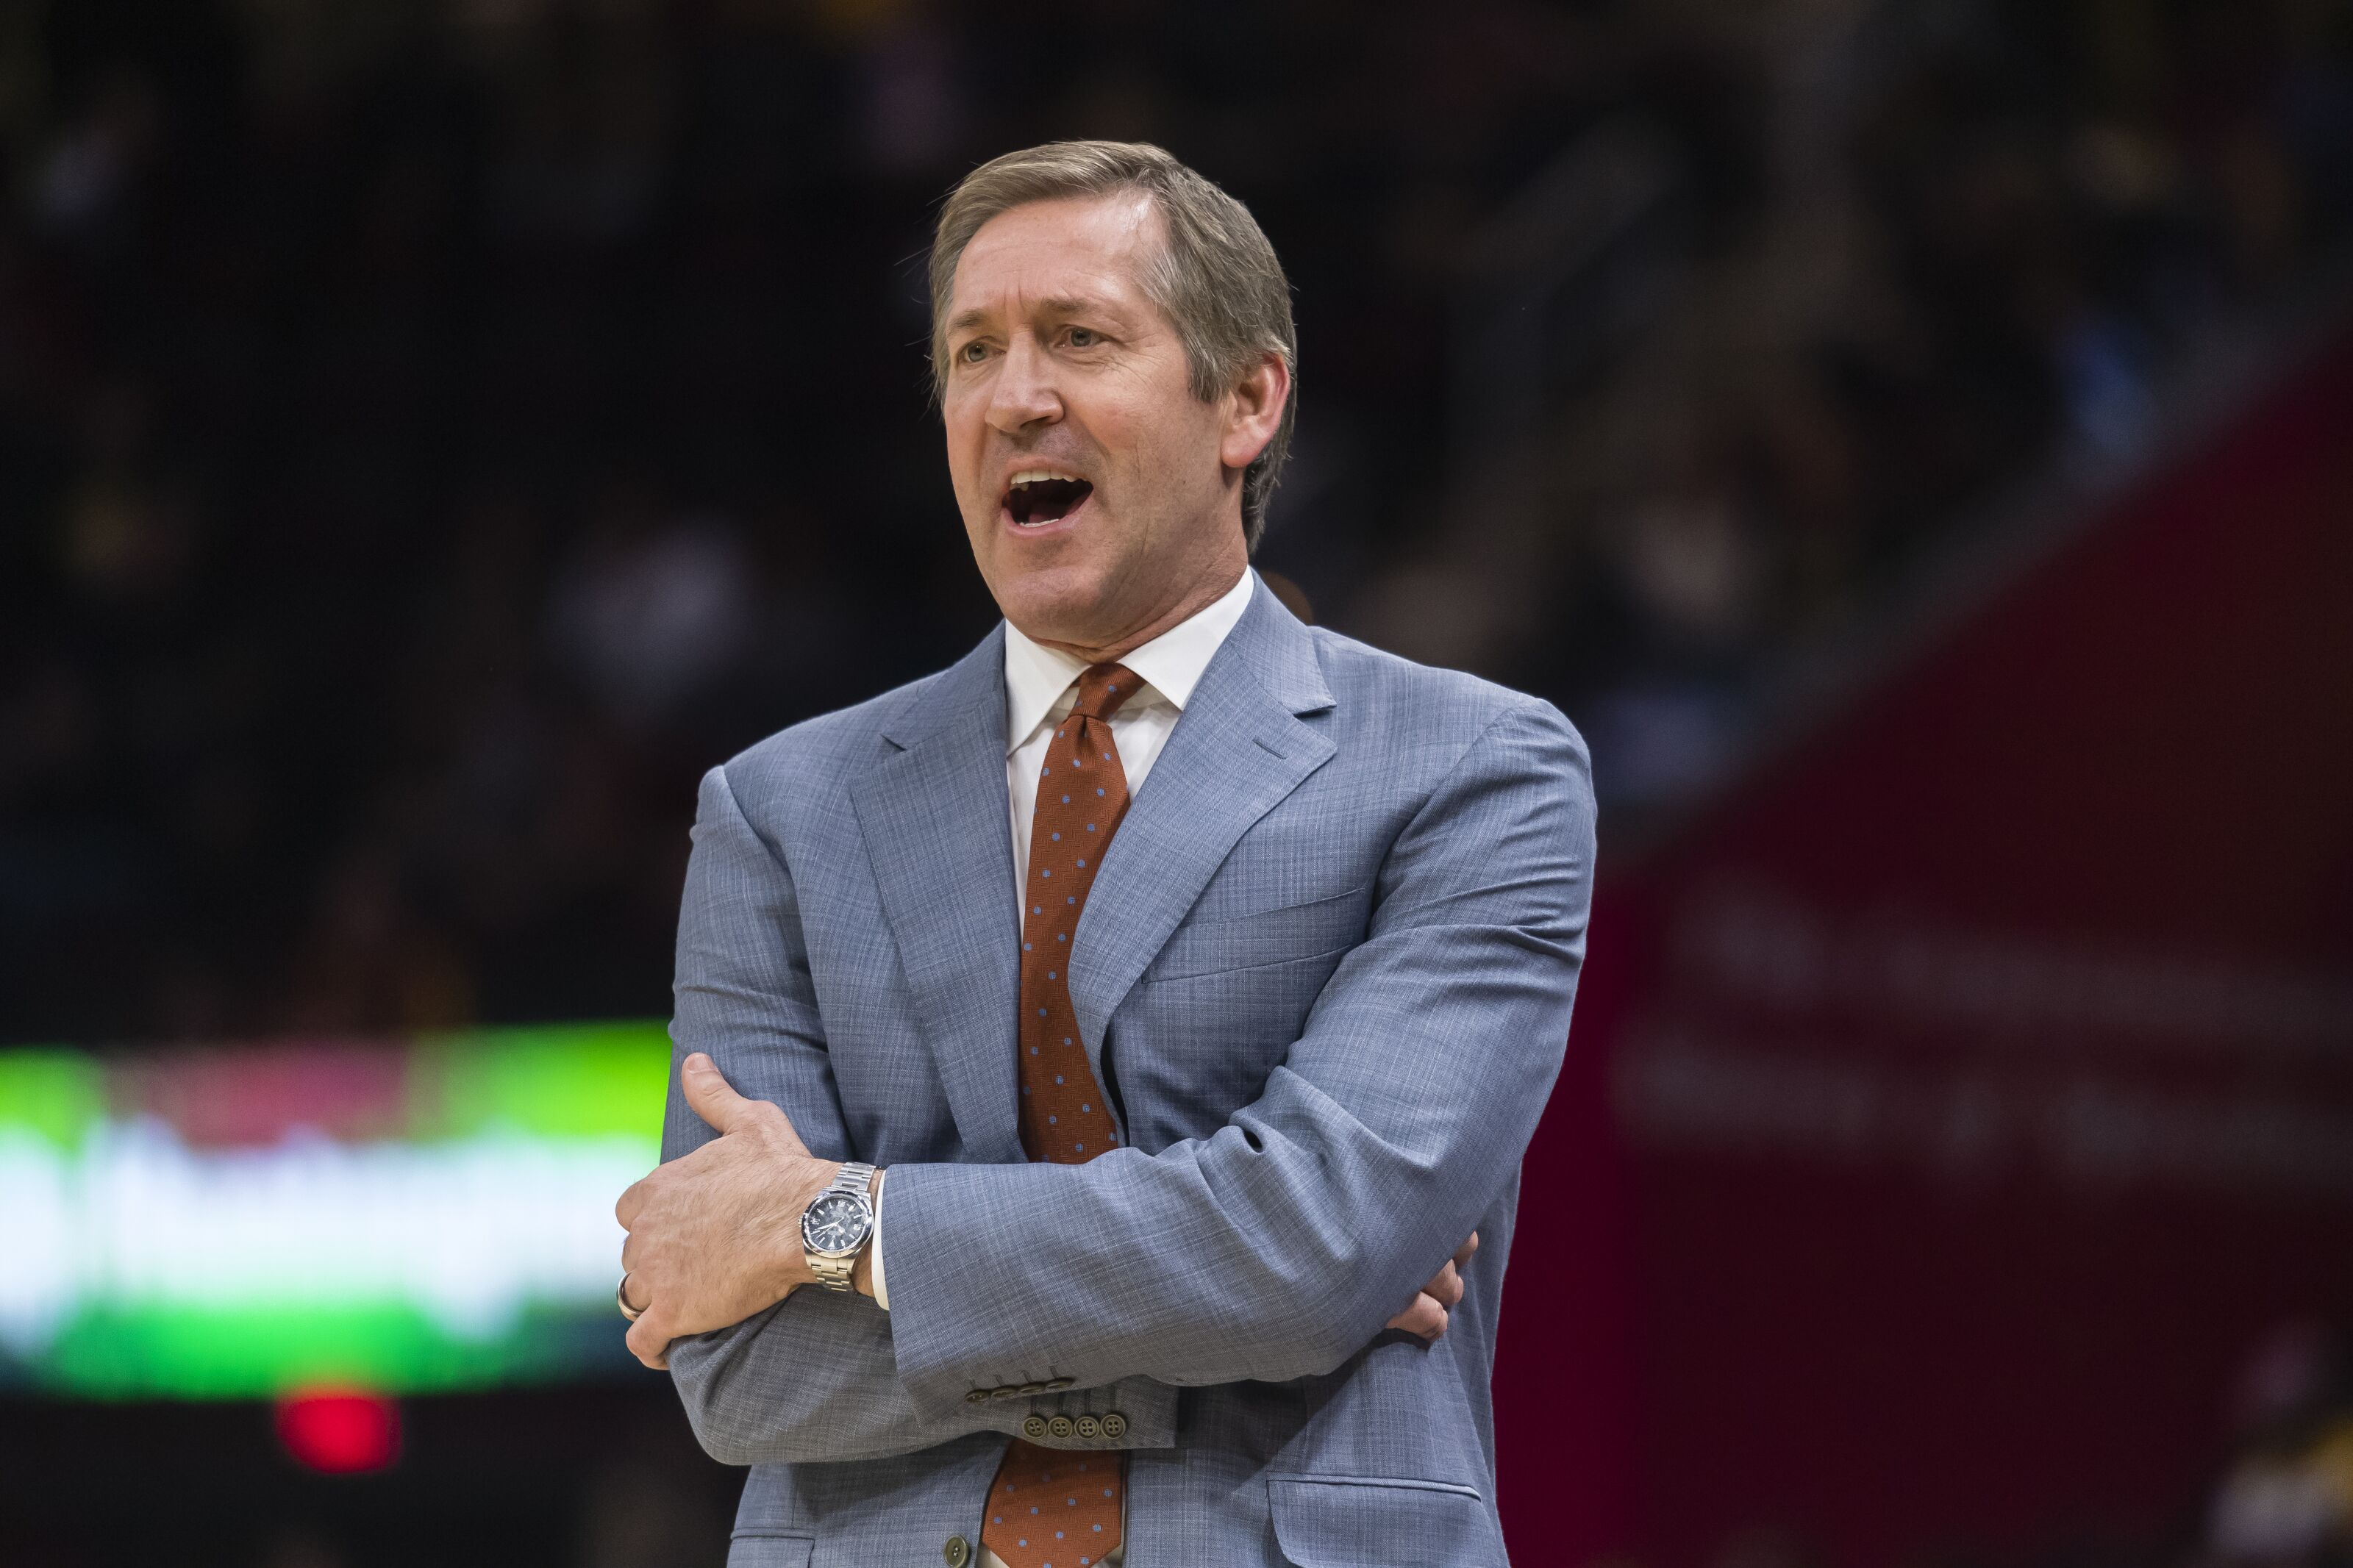 New York Knicks: 5 candidates to replace Jeff Hornacek as head coach